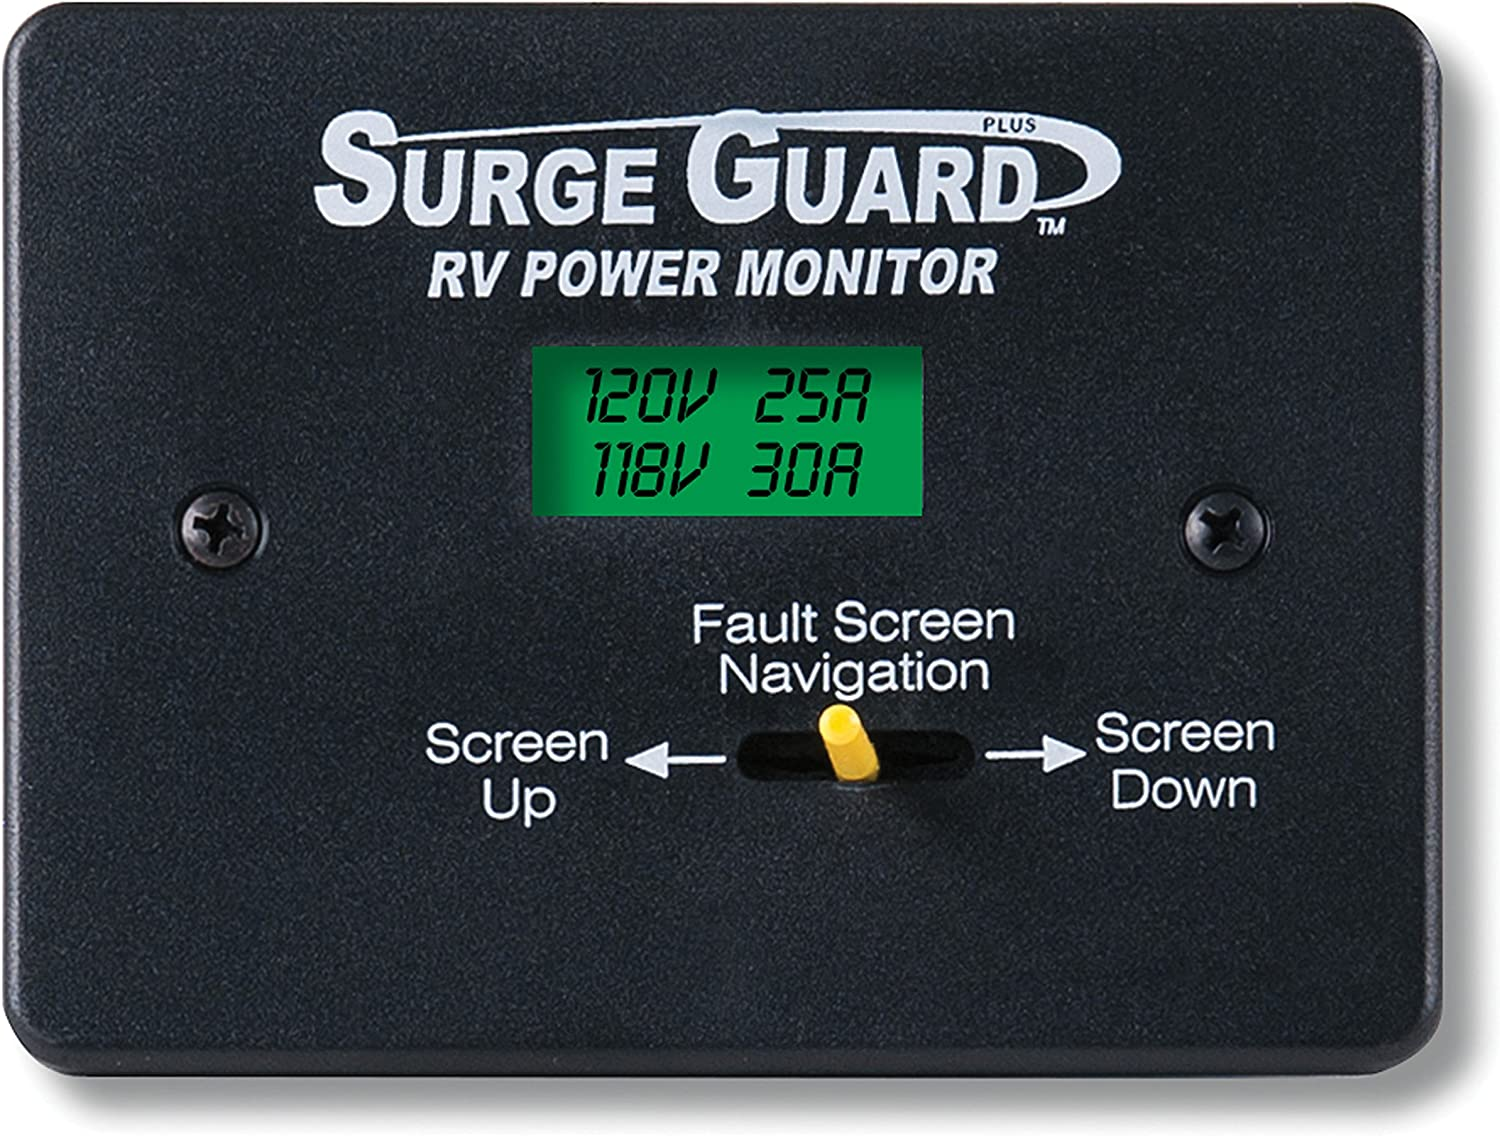 Technology Research Corp 40299 Surge Guard 50A Hardwire Automatic Transfer Switch